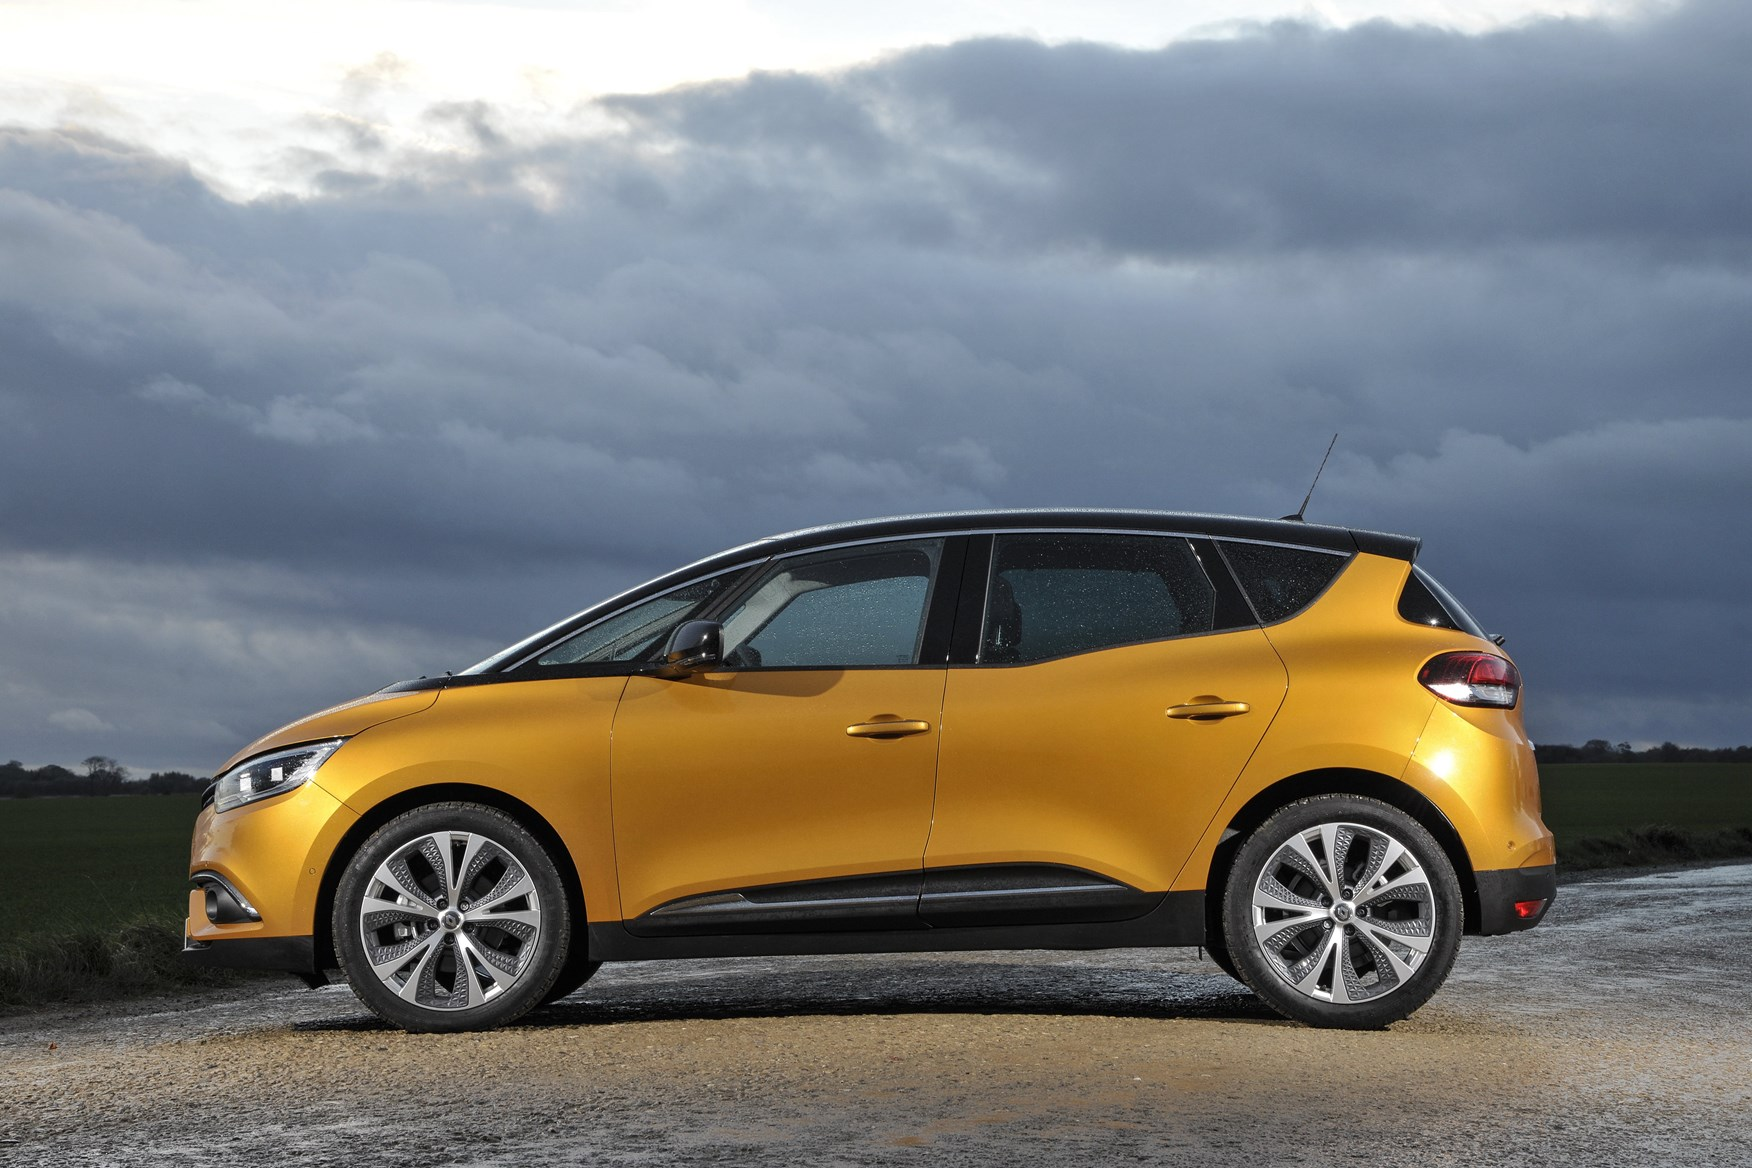 Renault Scenic long-term test